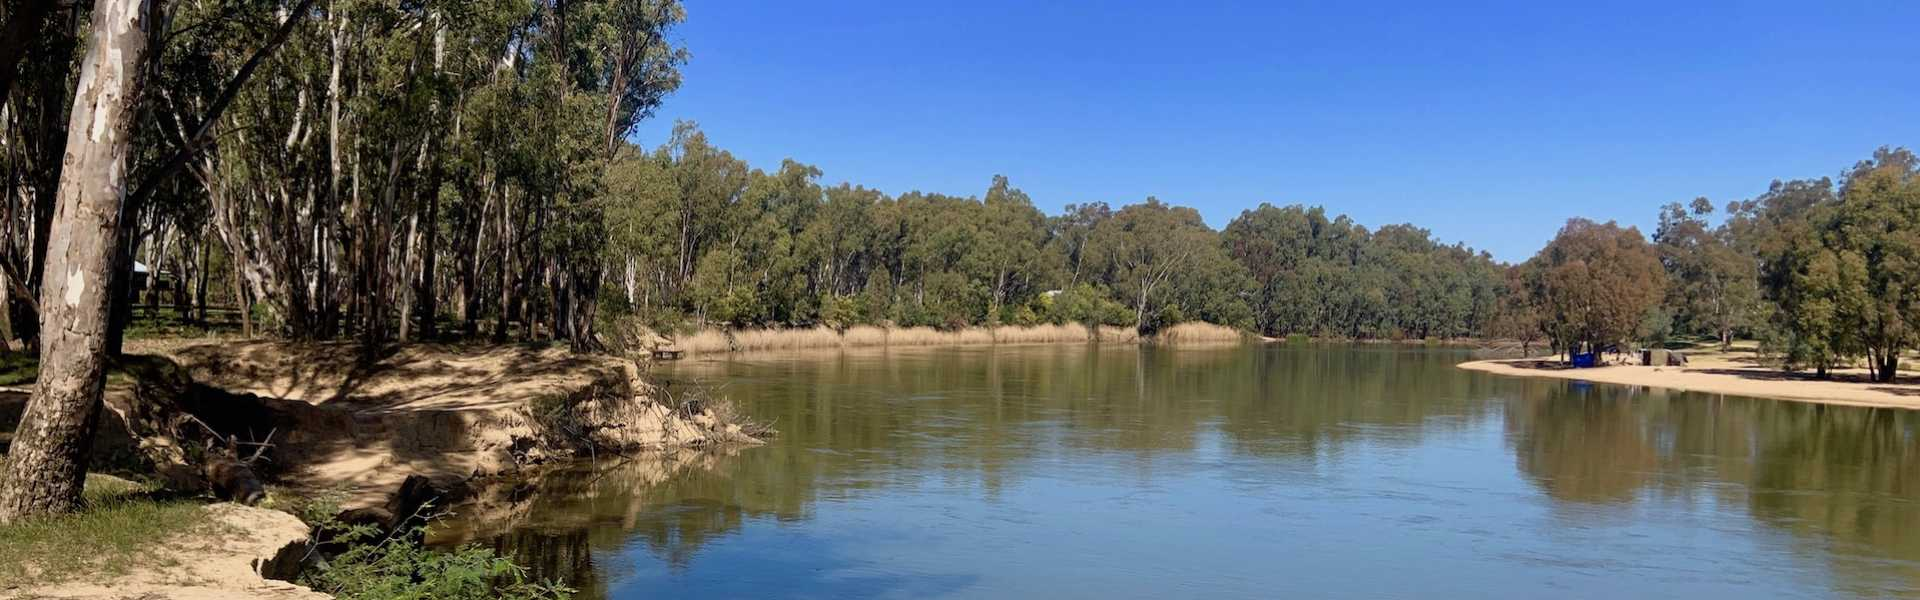 Kui Parks, Bushland on the Murray Holiday Park, Murray River